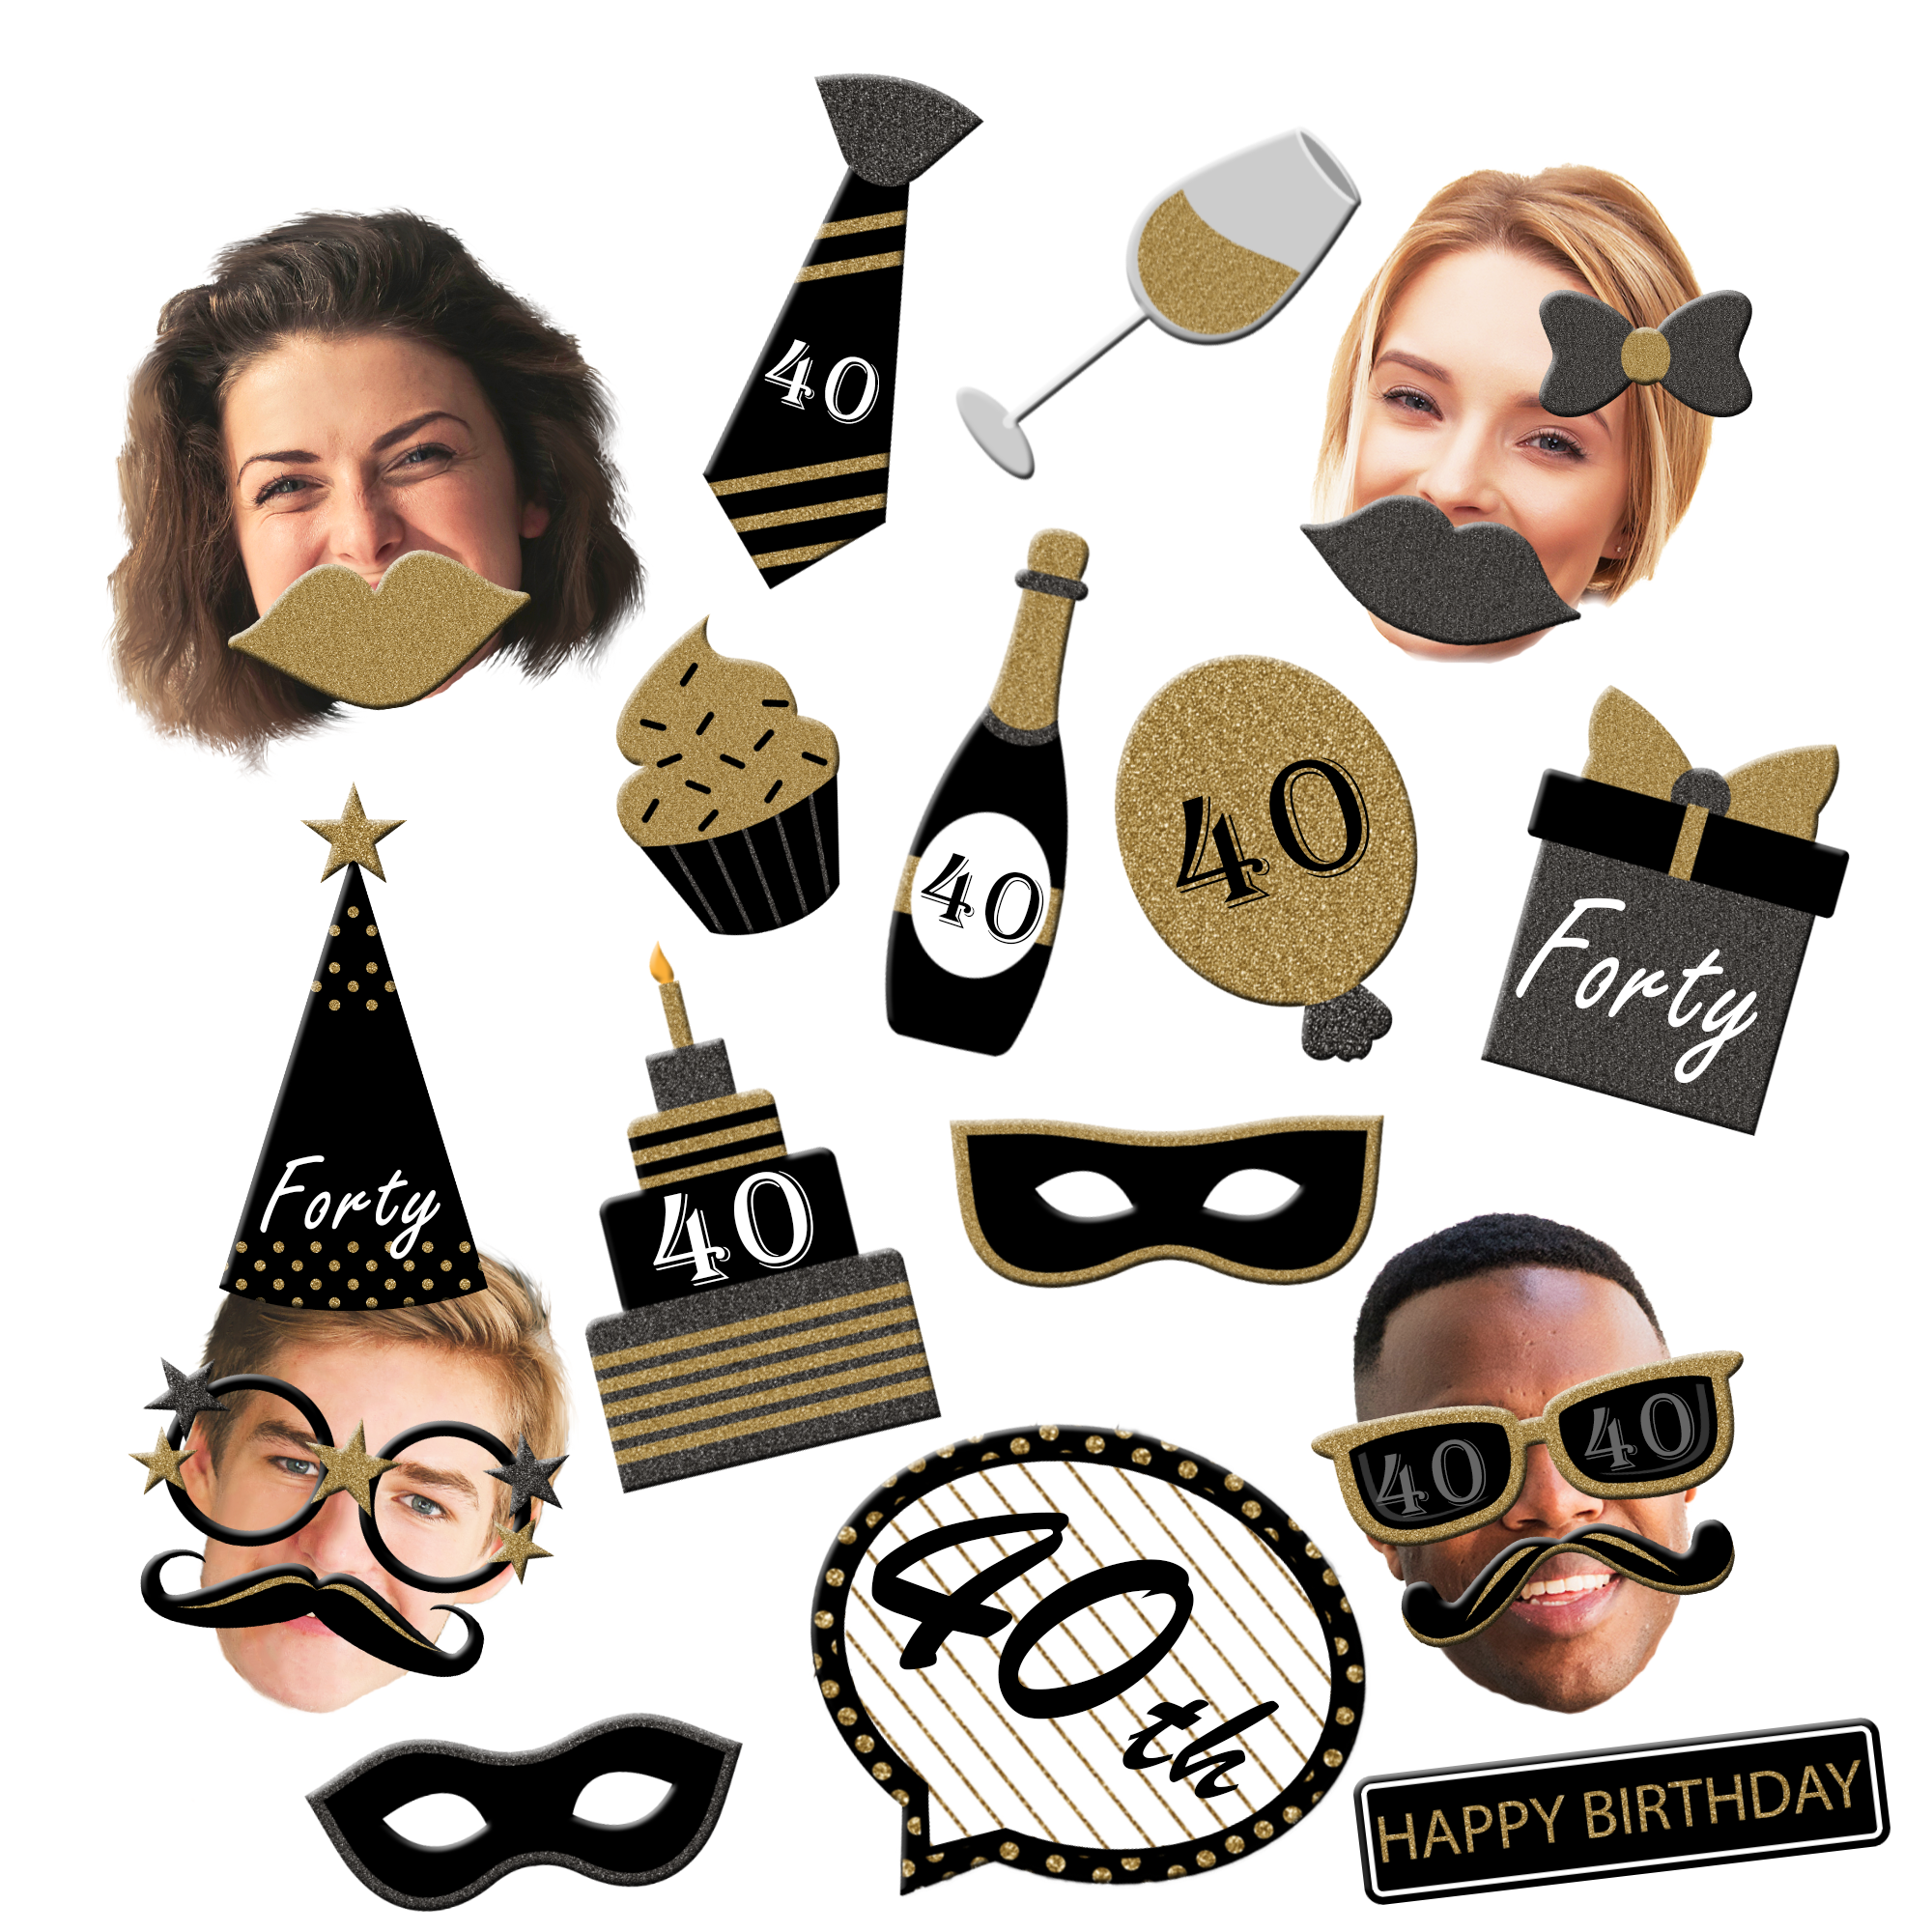 40th Birthday Black & Gold Photo Booth Props 20pcs Assembled - BirthdayGalore.com